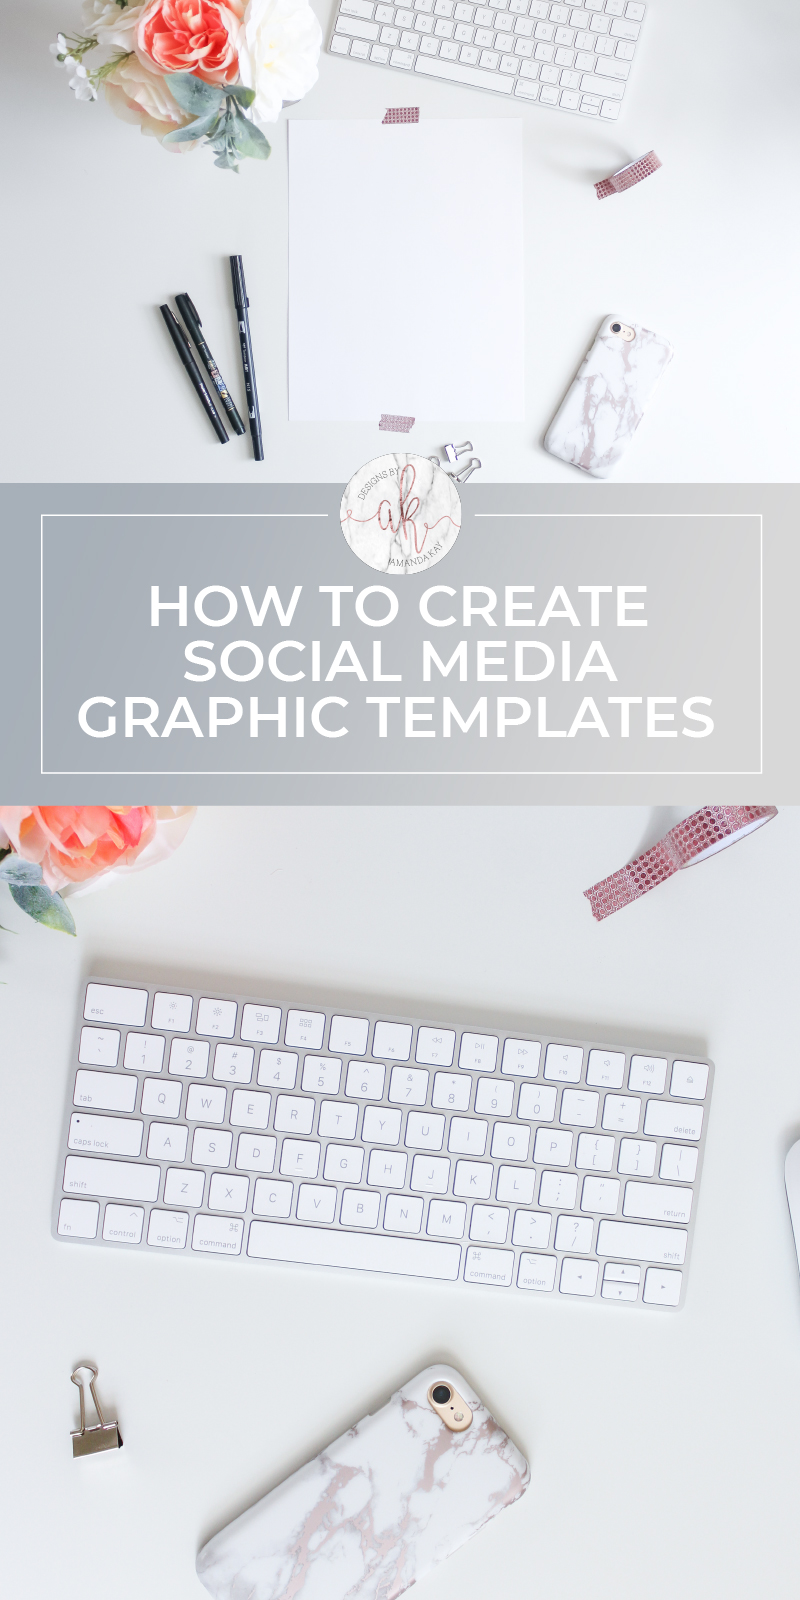 Save your time and sanity by learning how to create social media graphic templates using Adobe Illustrator.